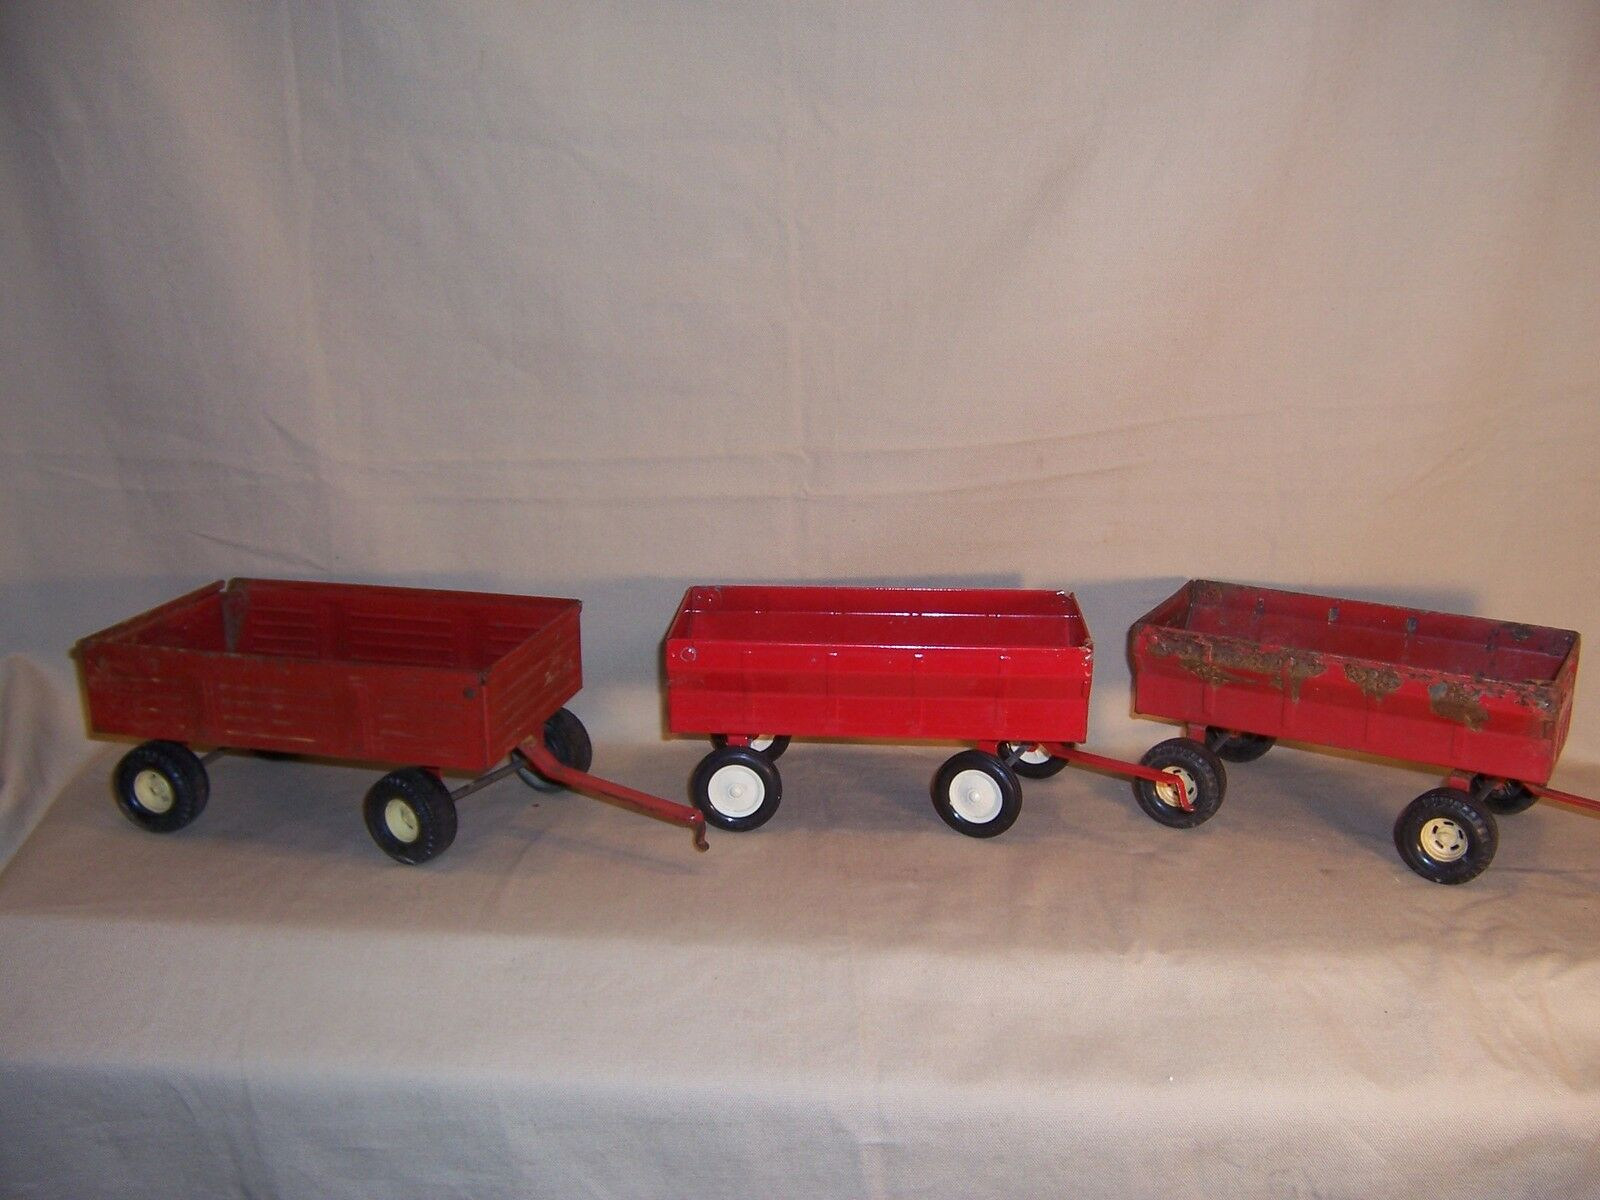 Vintage lot of 3 Toy Trailer ERTL Wagon Farm Harvest Tool Red made in the USA